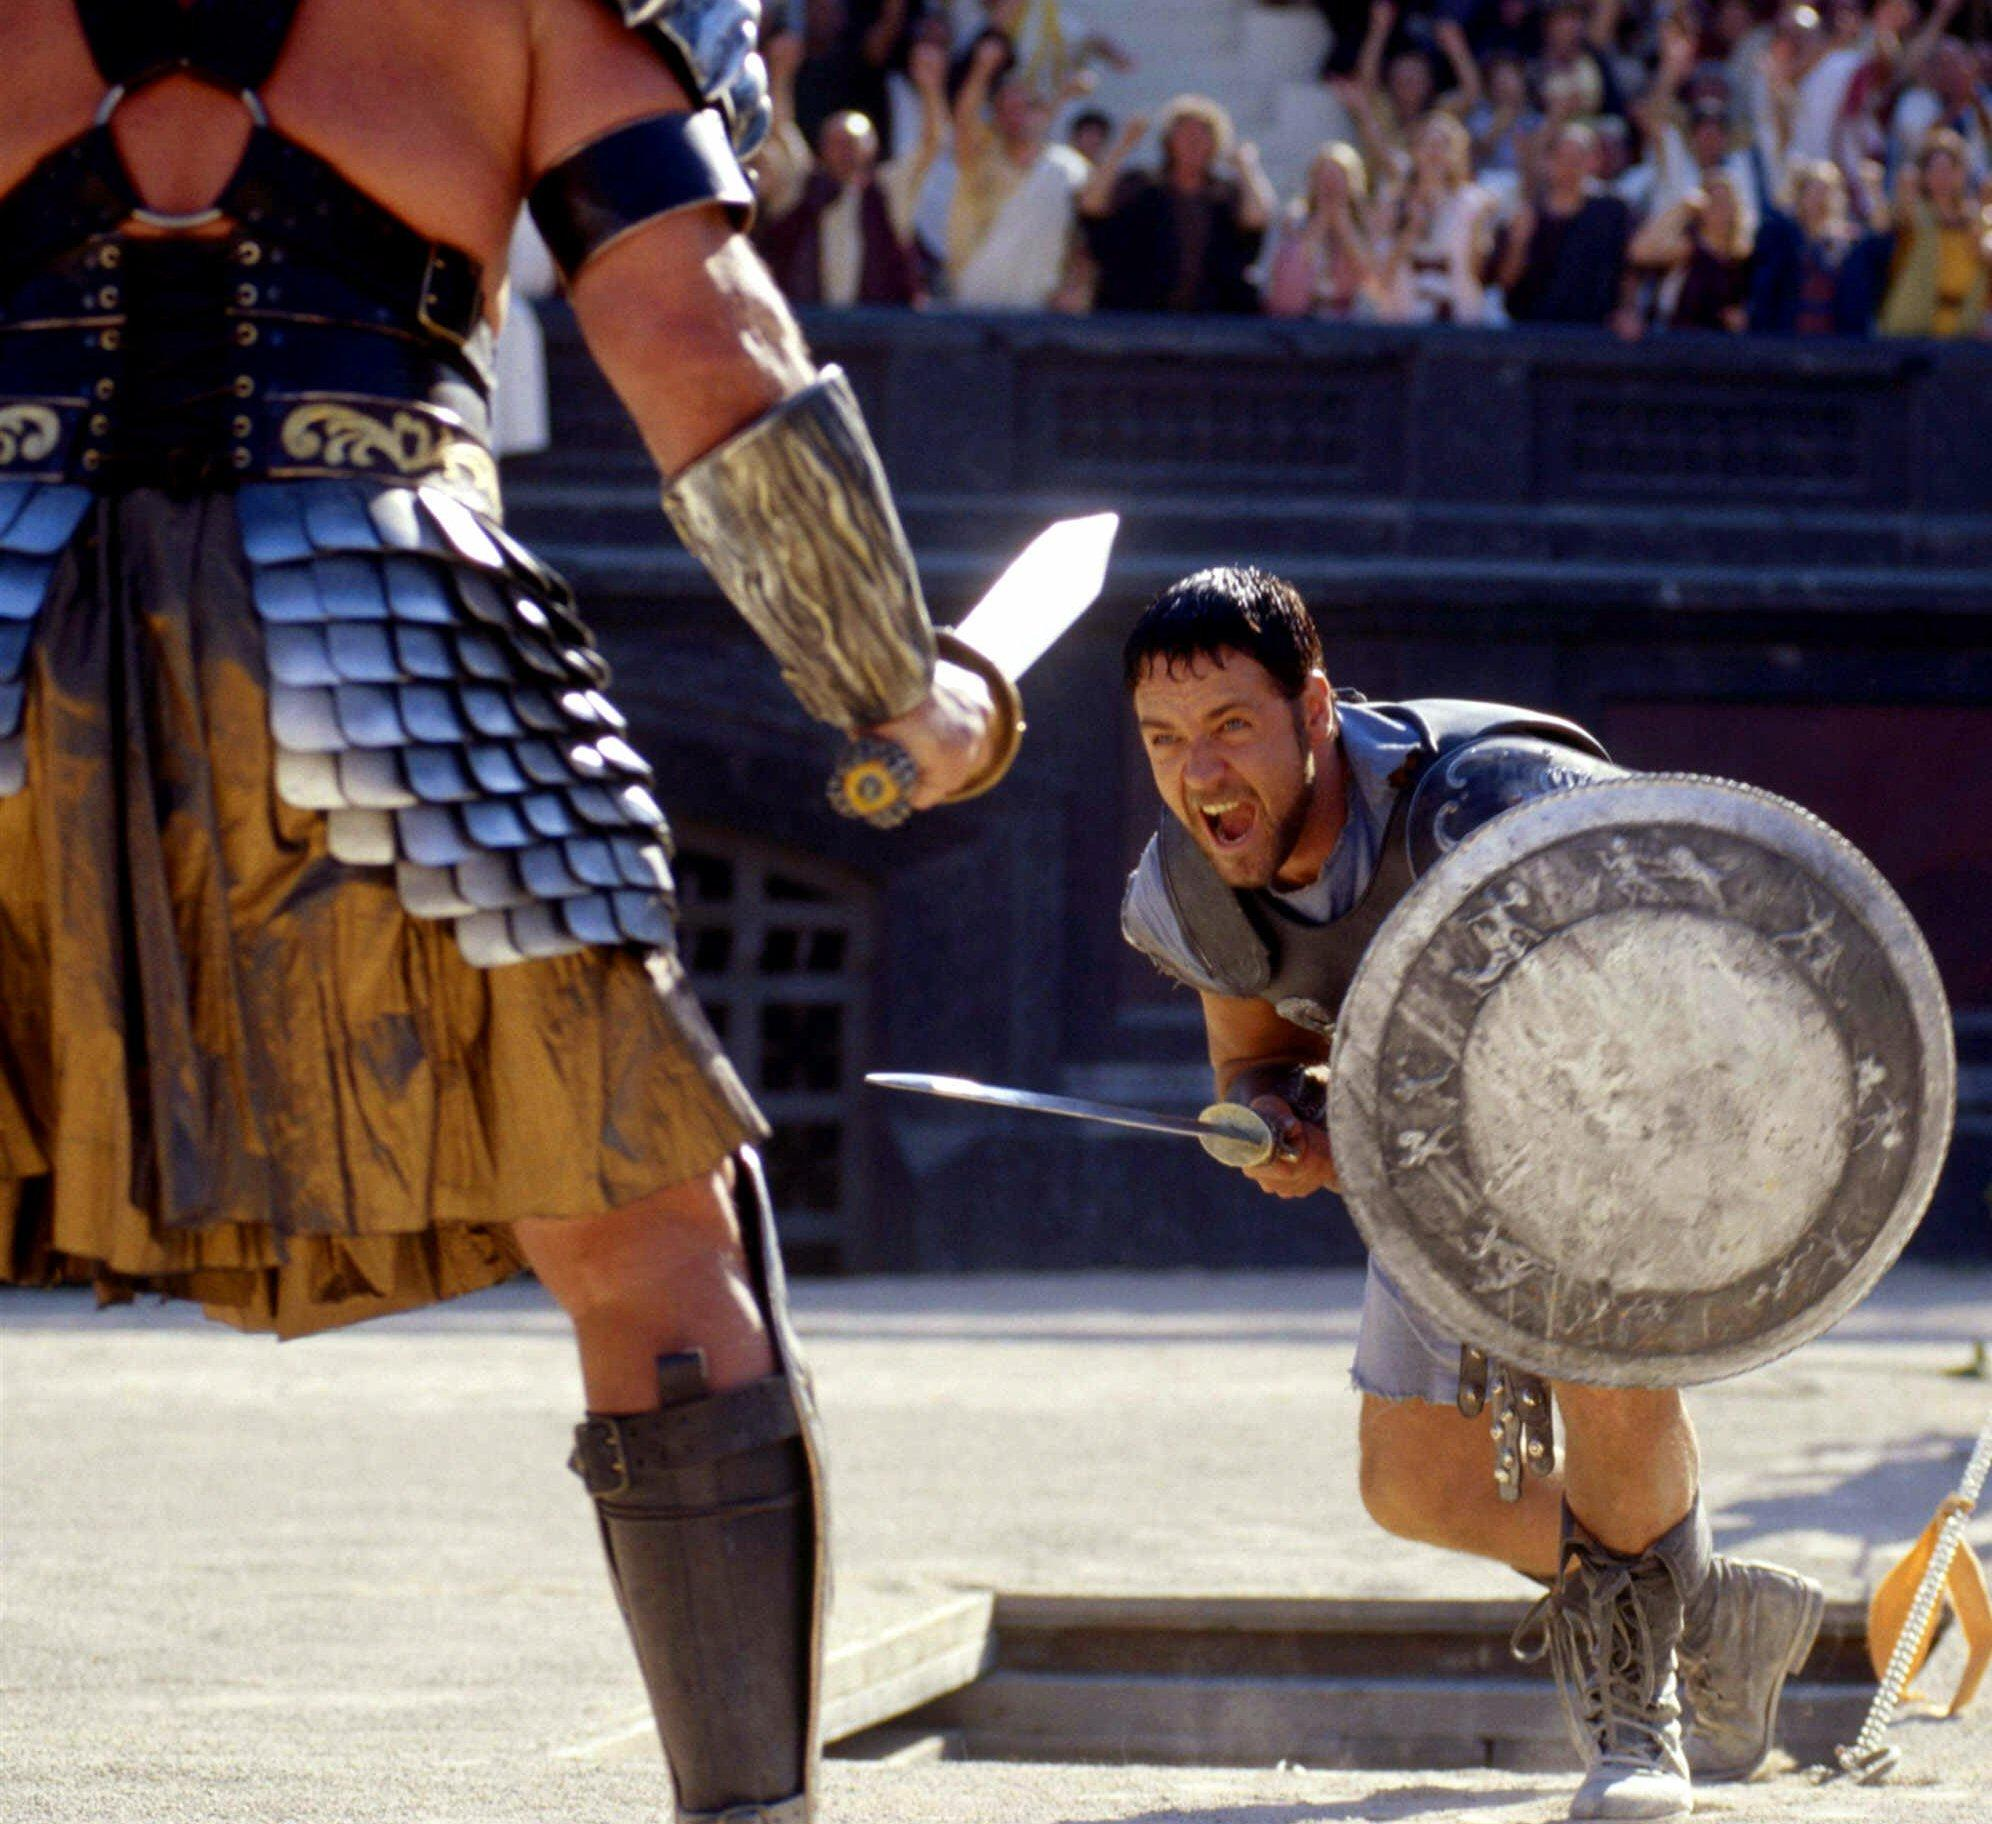 The cyclist reveals he cried while watching 'Gladiator' starring Academy award winner Russell Crowe